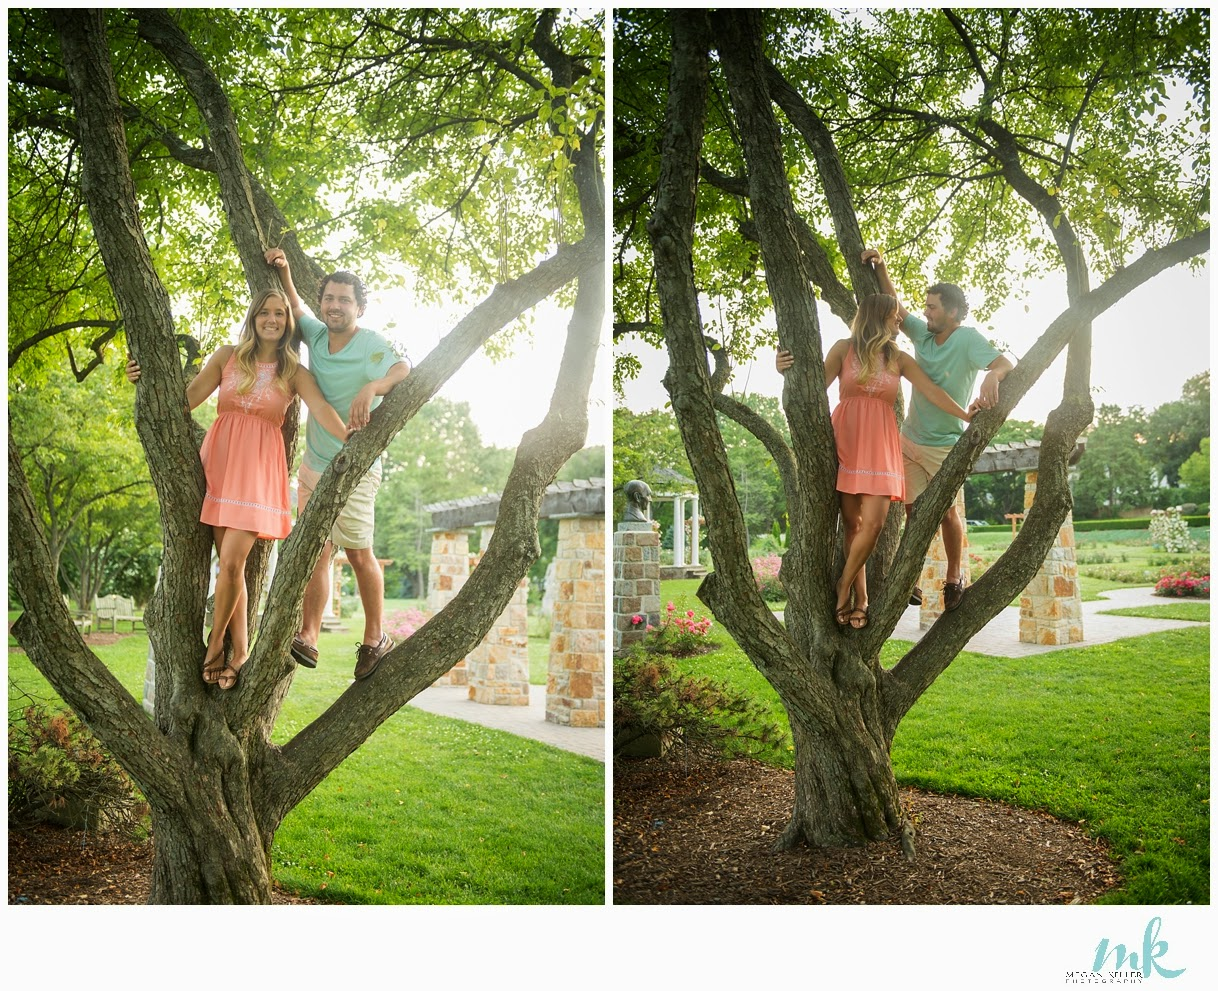 Breanna and Lucas Engagement Session Breanna and Lucas Engagement Session 2014 07 02 0011